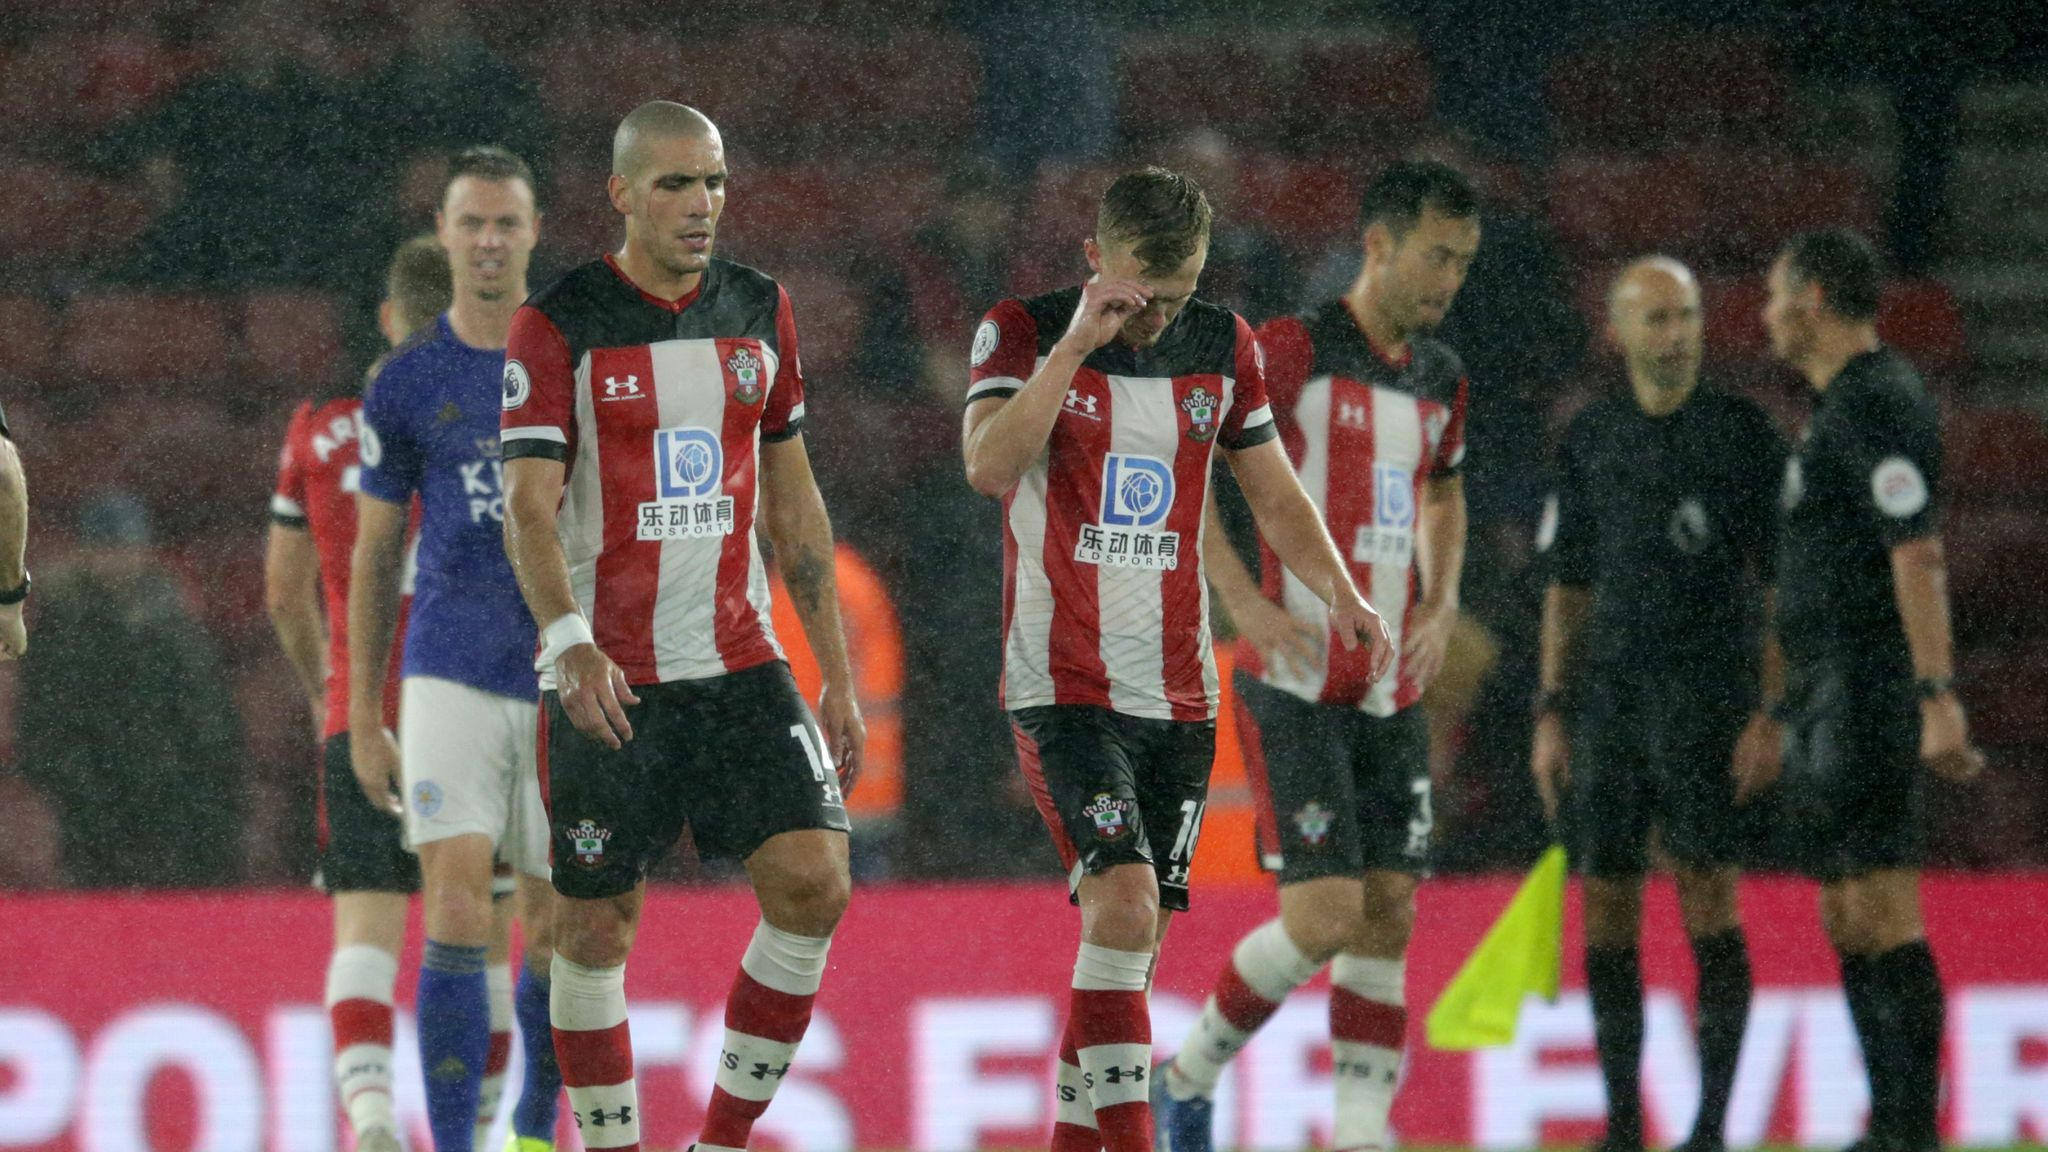 Southampton 0 9 Leicester How Do Saints Respond To Thrashing Football News Sky Sports